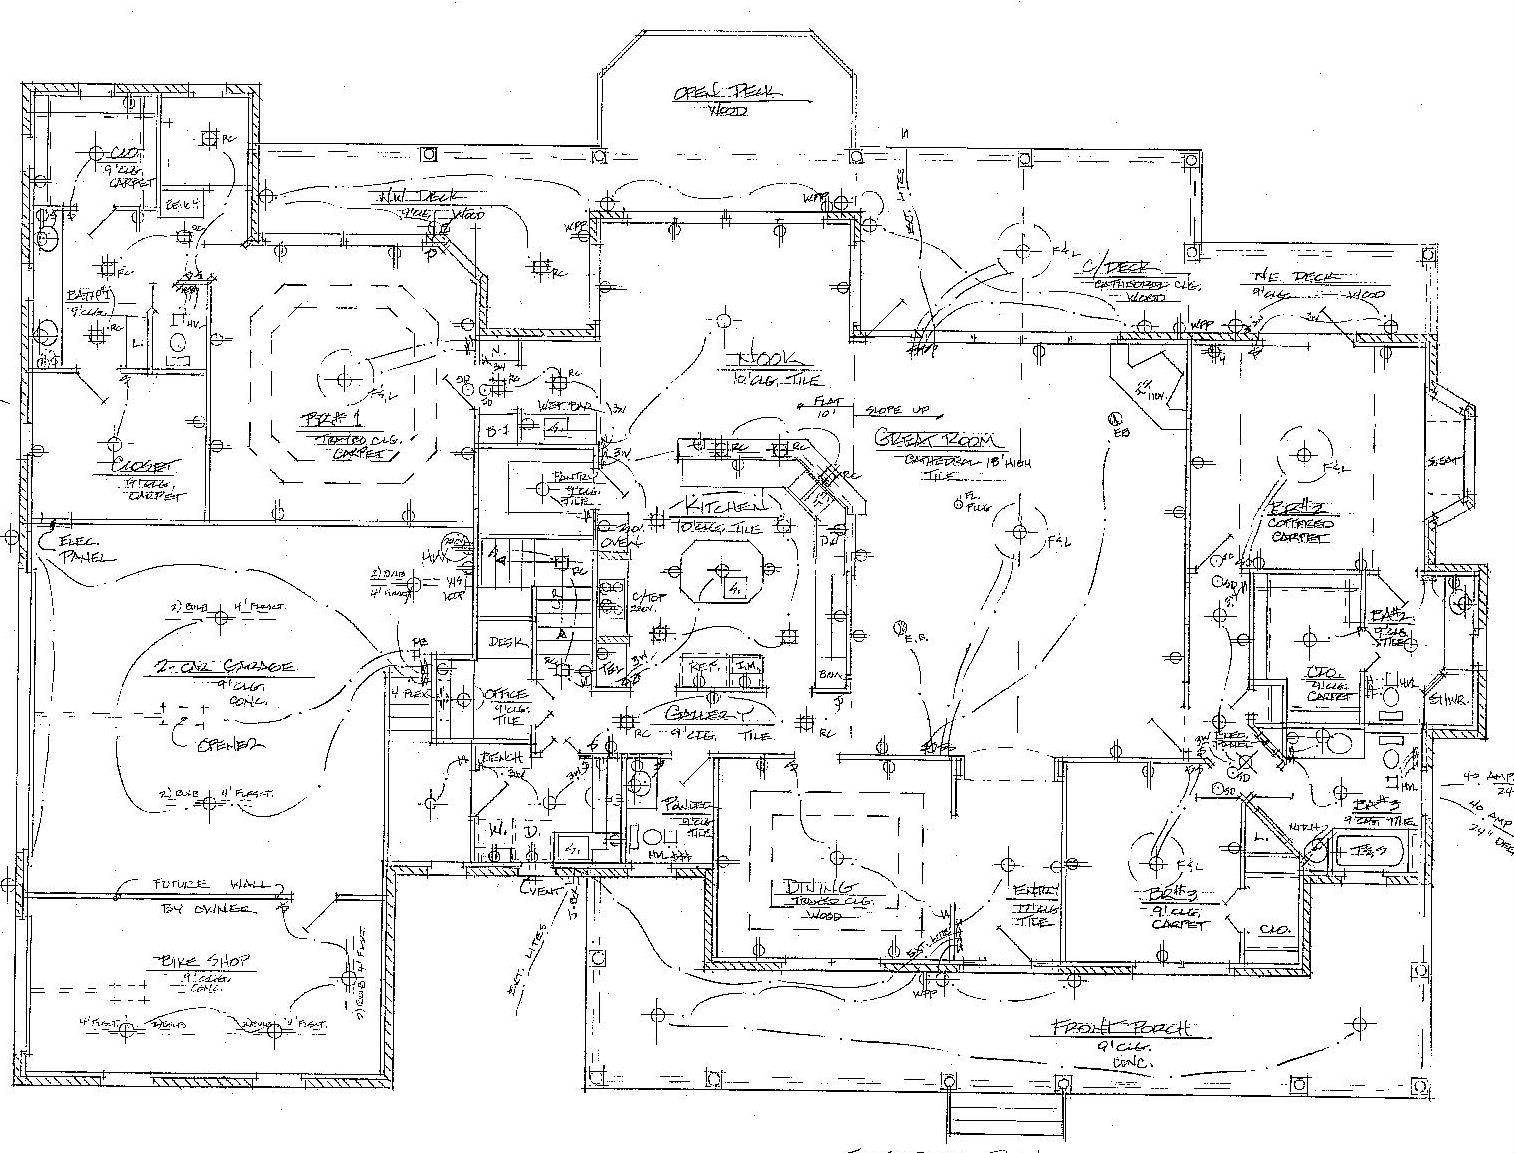 House Wiring Plans Floor Plan Electrical Diagram